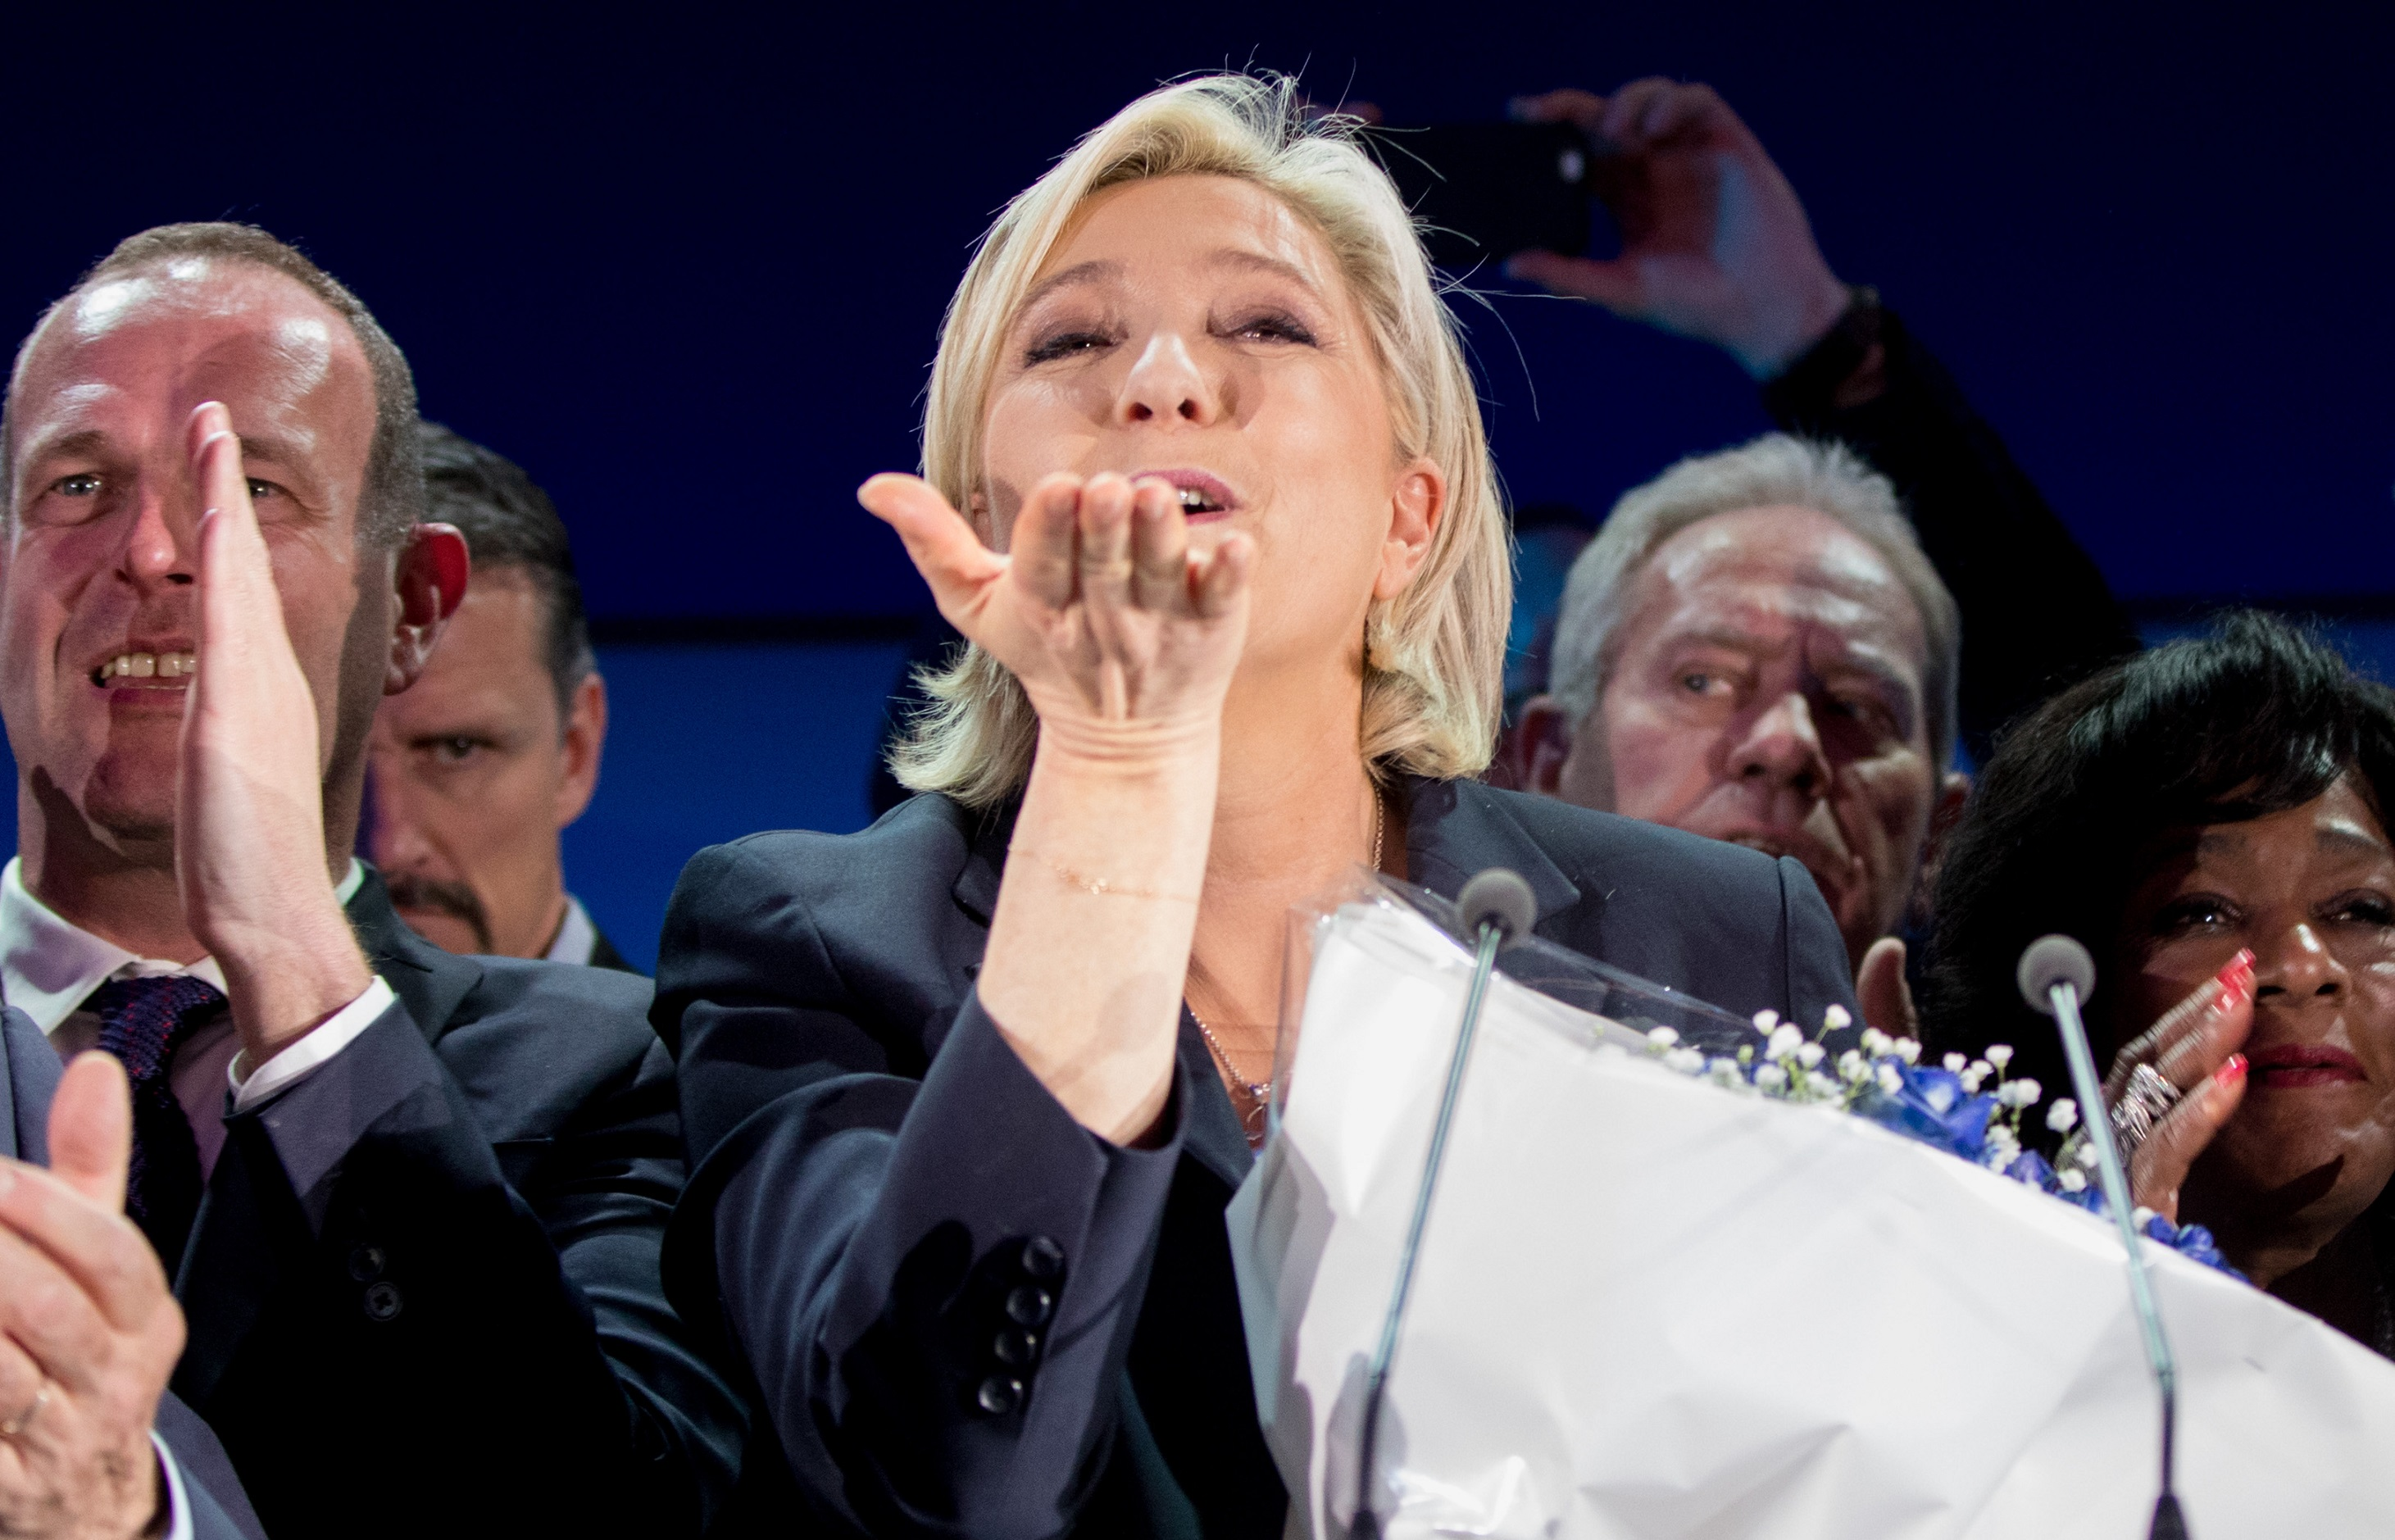 French Presidential Elections 2017 - Marine Le Pen Wins First Round